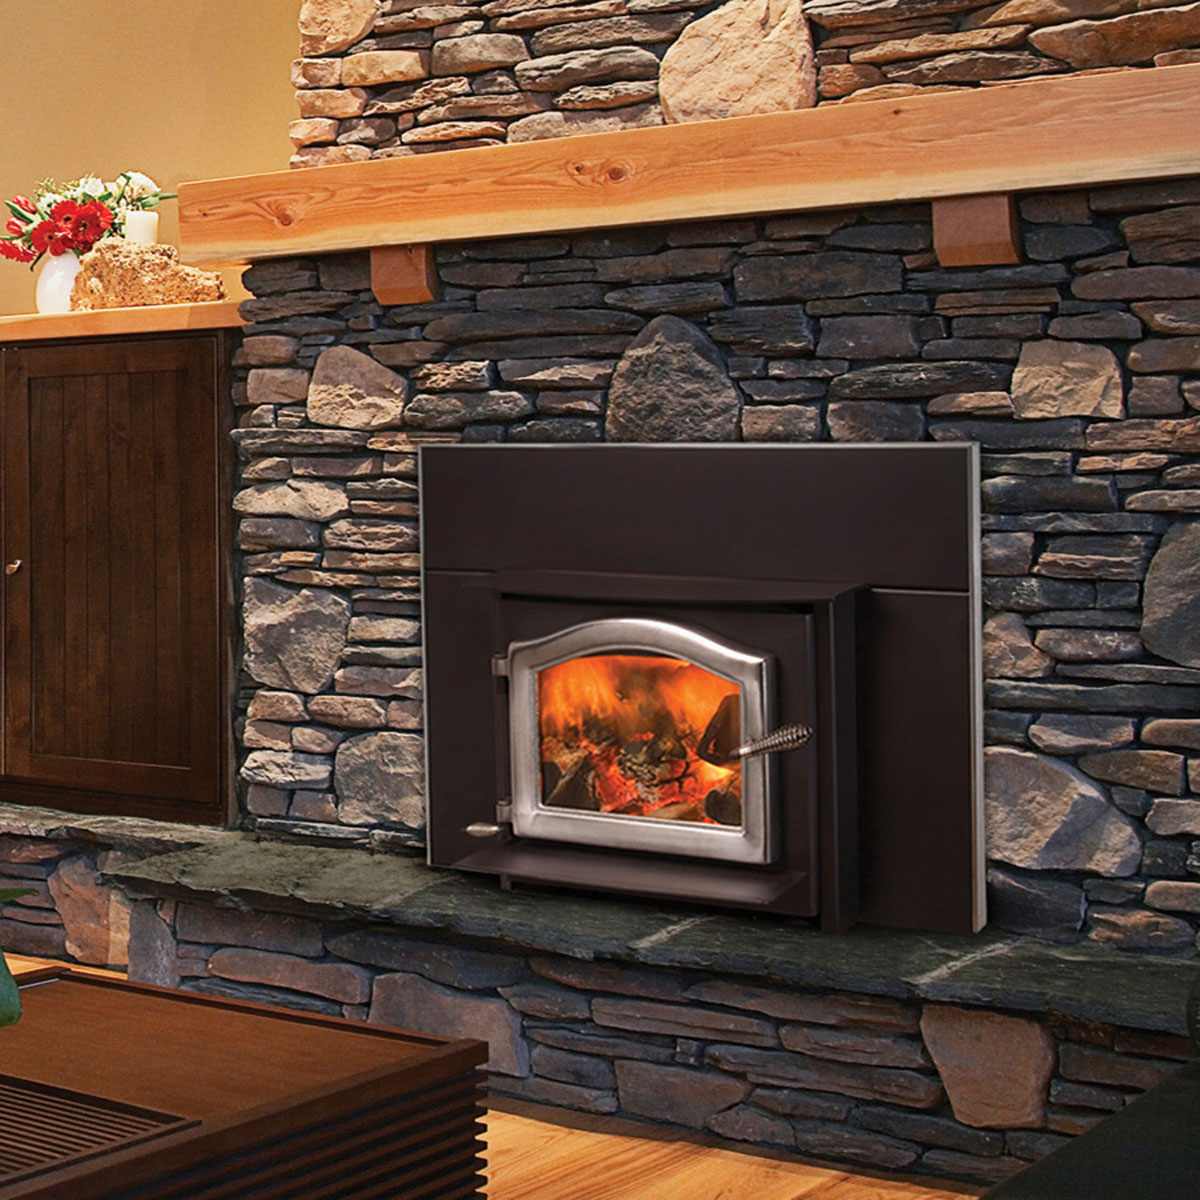 Kuma Ashwood wood fireplace insert, made in the USA